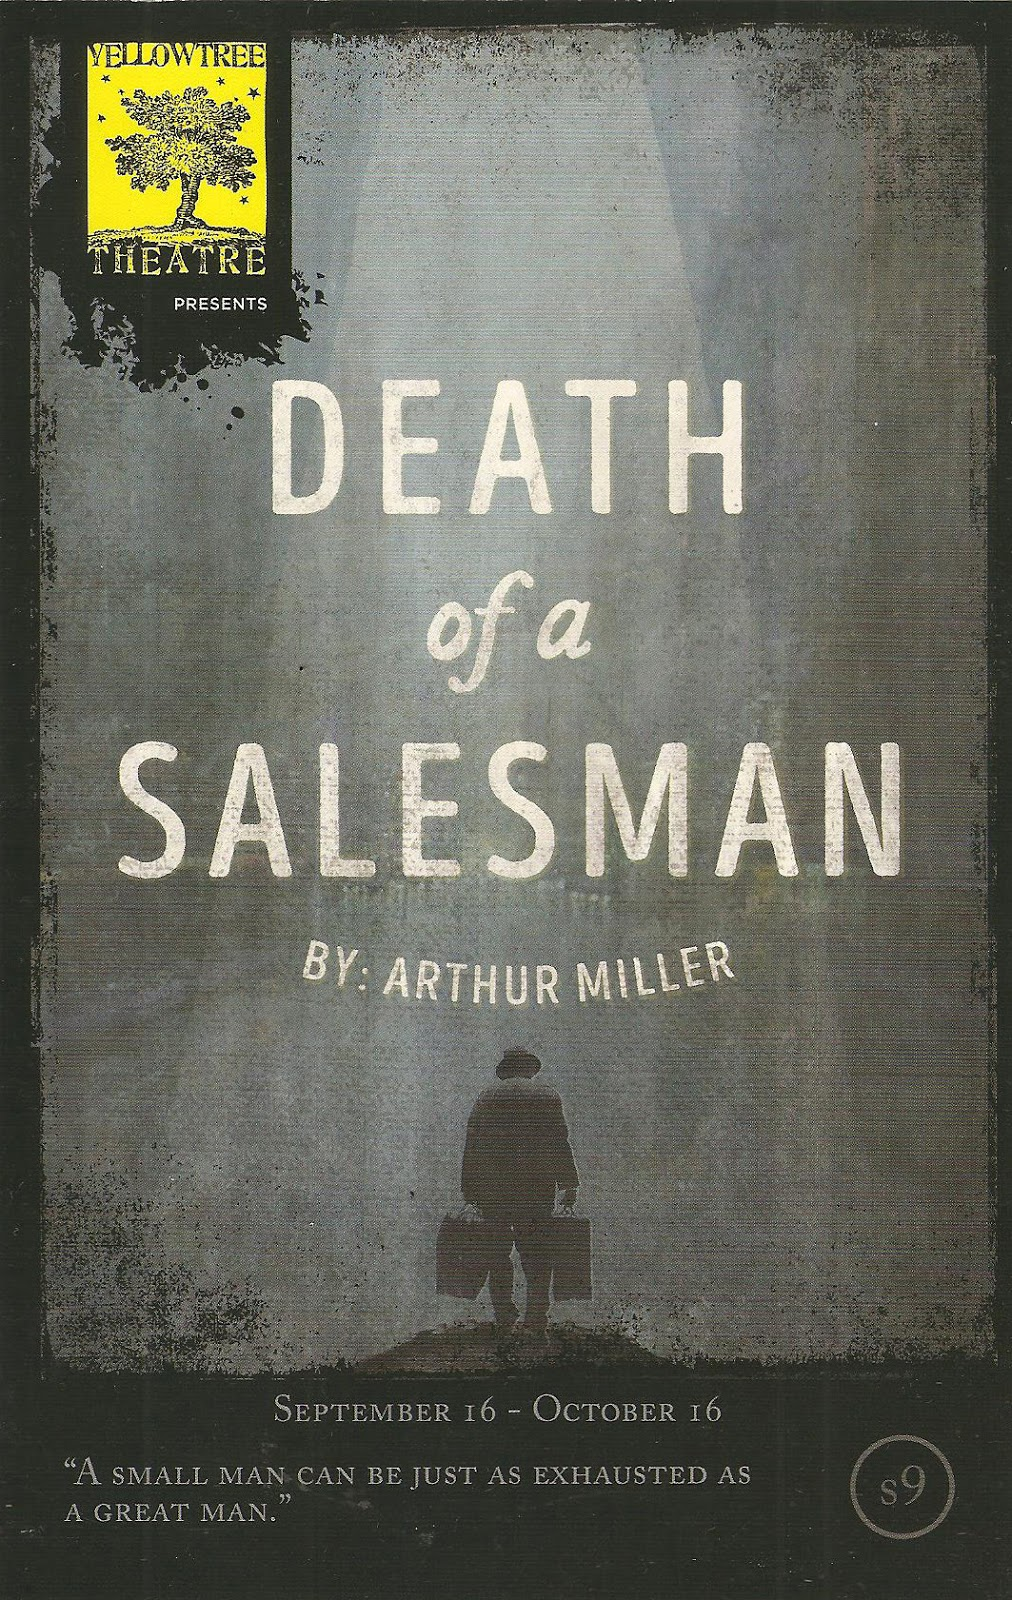 "an analysis of the theatrical classic death of a salesman A detailed analysis of death of a salesman but arthur miller's classic work ""death of a salesman"" begs the question: dramatic technique in death of a."